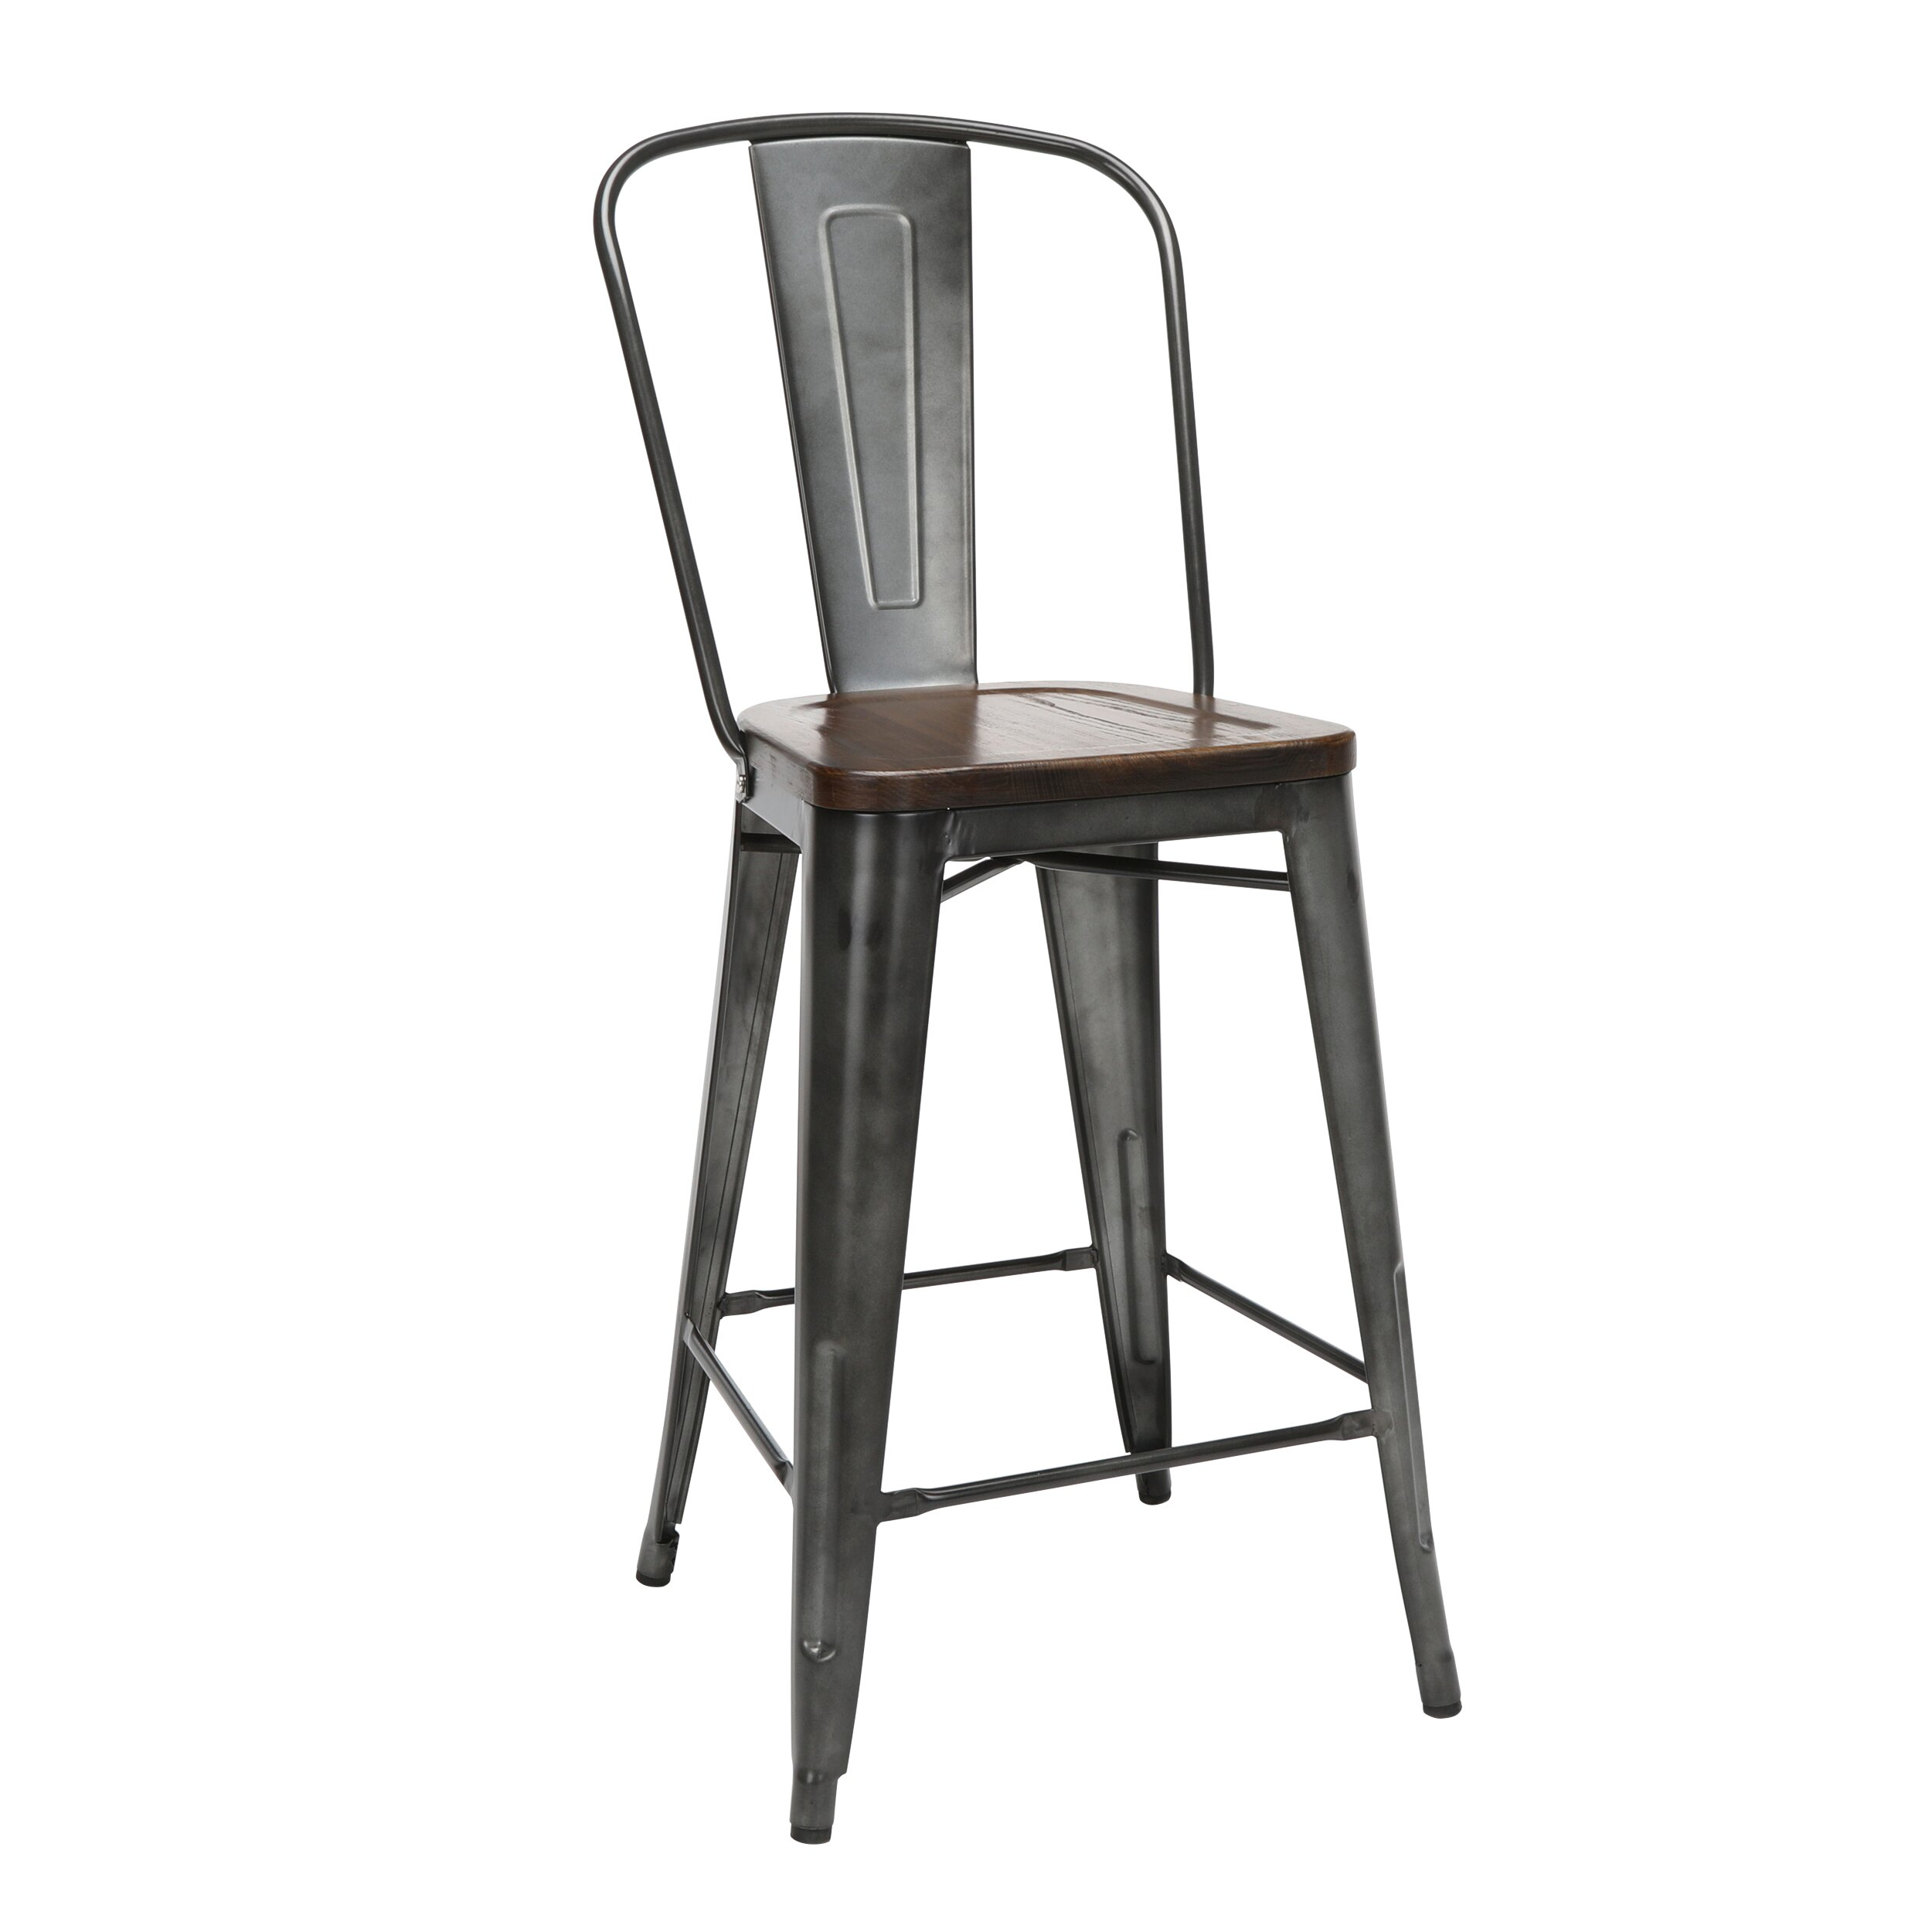 Marvelous Ofm 161 Collection Industrial Modern 4 Pack 26 High Back Metal Stools With Solid Ash Wood Seats Galvanized Steel Bar Stools In Gunmetal Walnut Machost Co Dining Chair Design Ideas Machostcouk